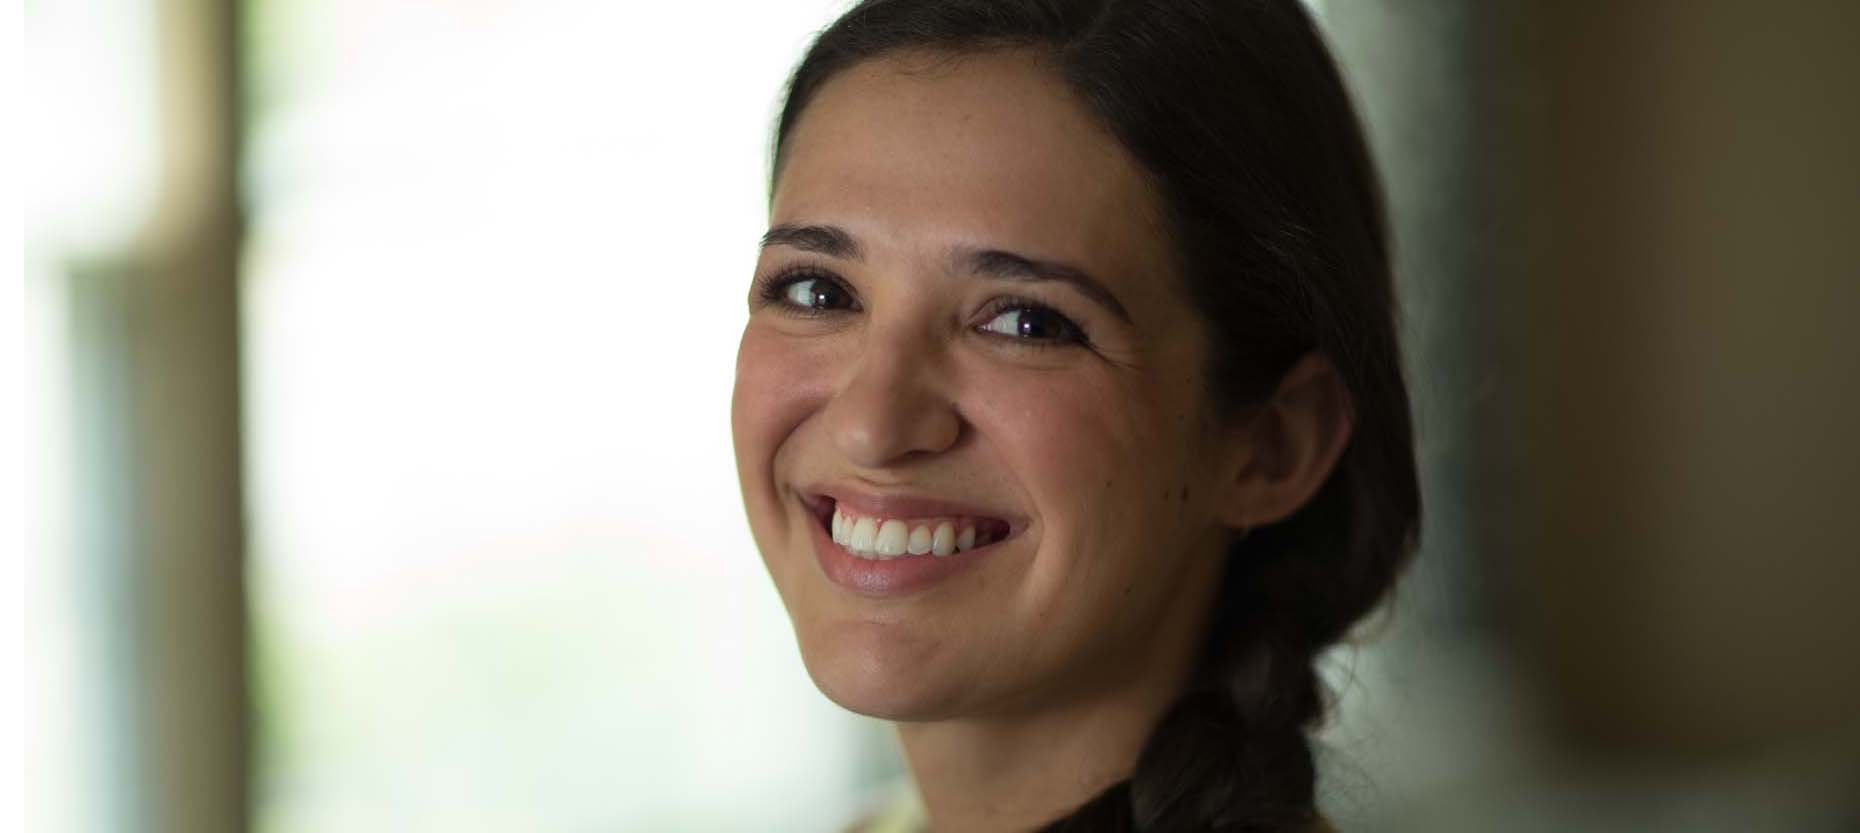 Thanks to Lasik, Cristina Leon was free of glasses at her wedding